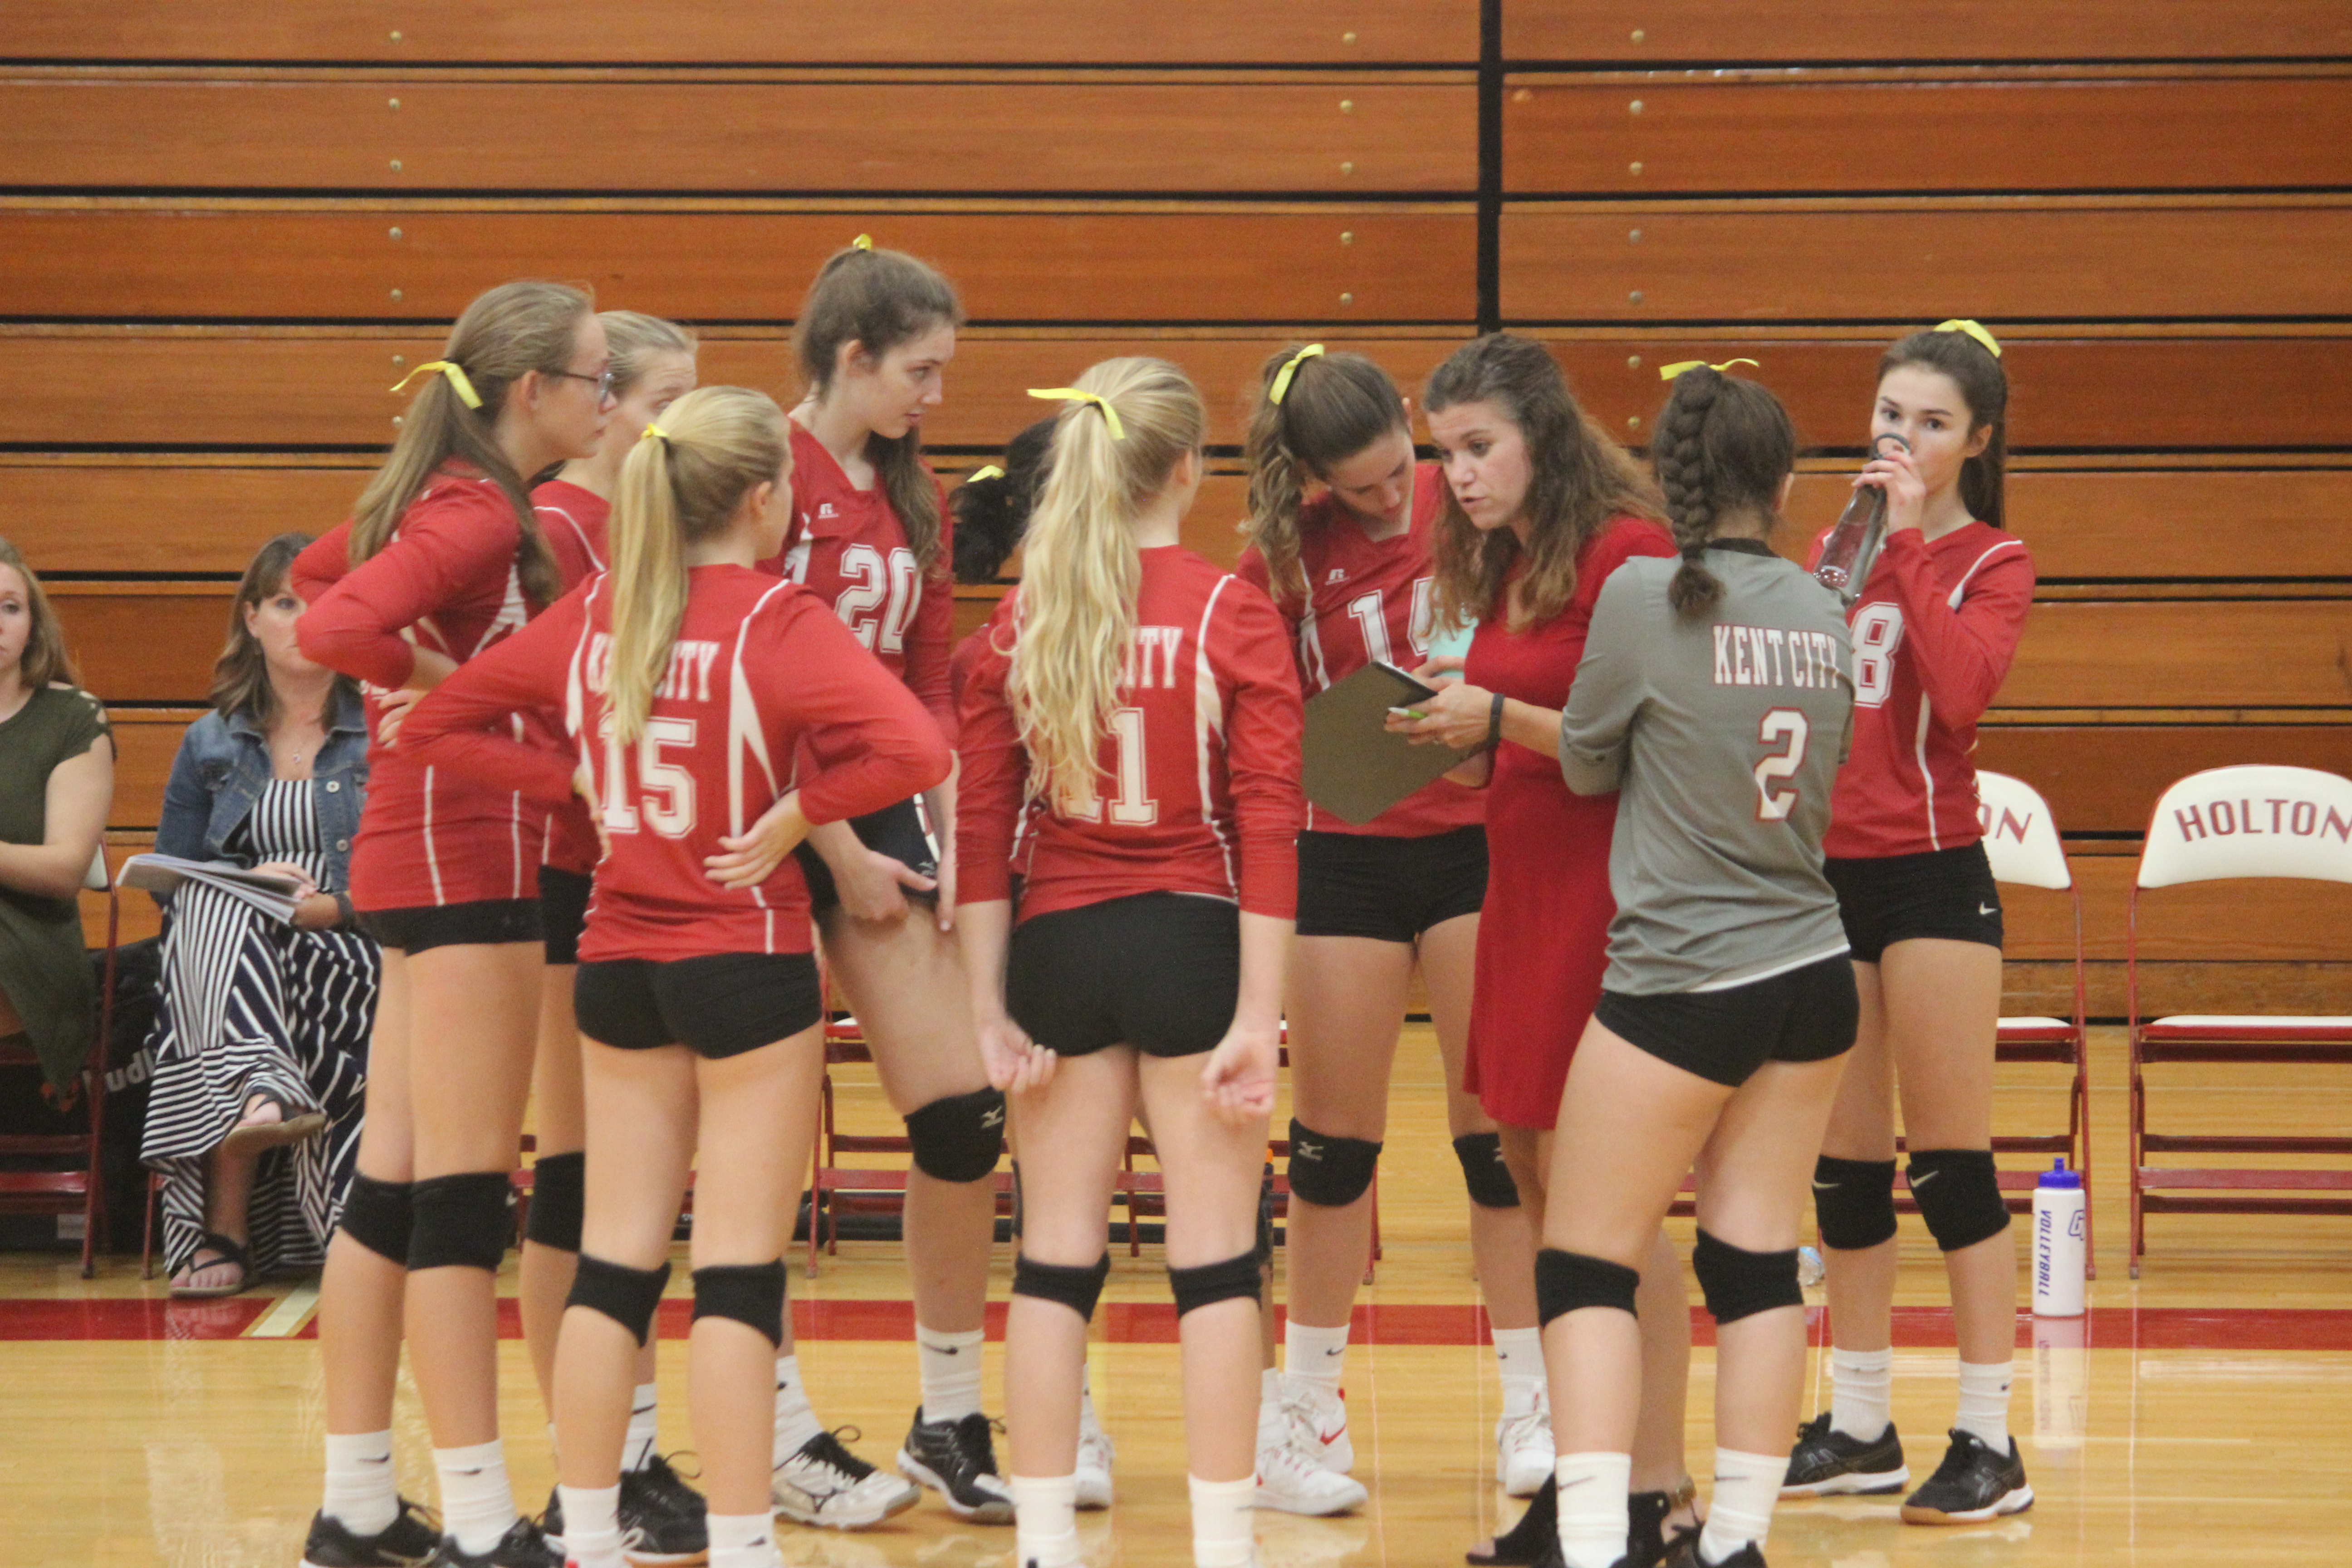 JV volleyball has busy and exciting week